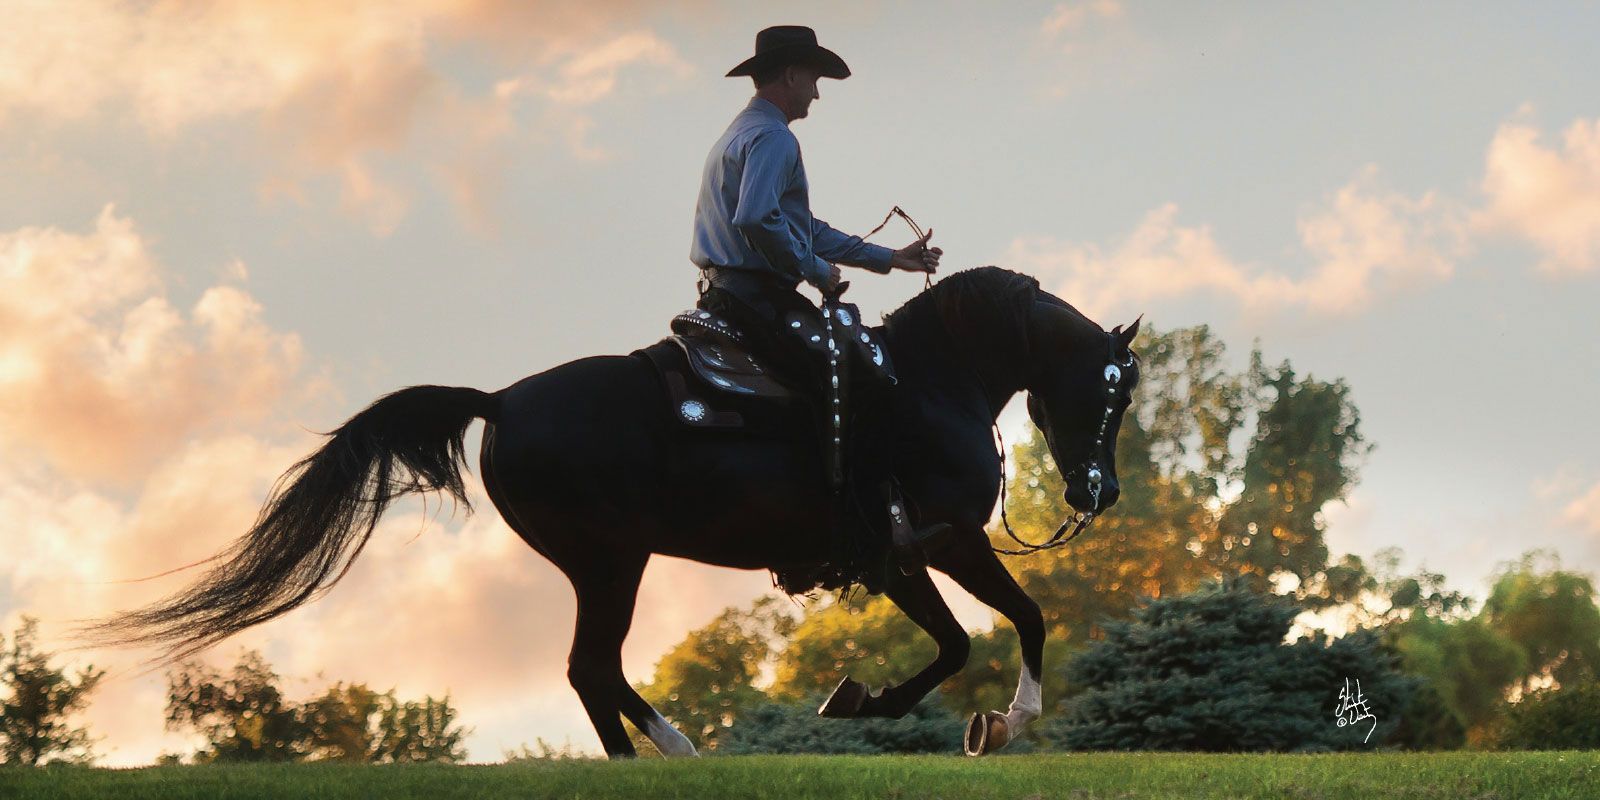 Arabian-from-Arabian-Horse-World-articles-and-news-wallpaper-wpc5802232